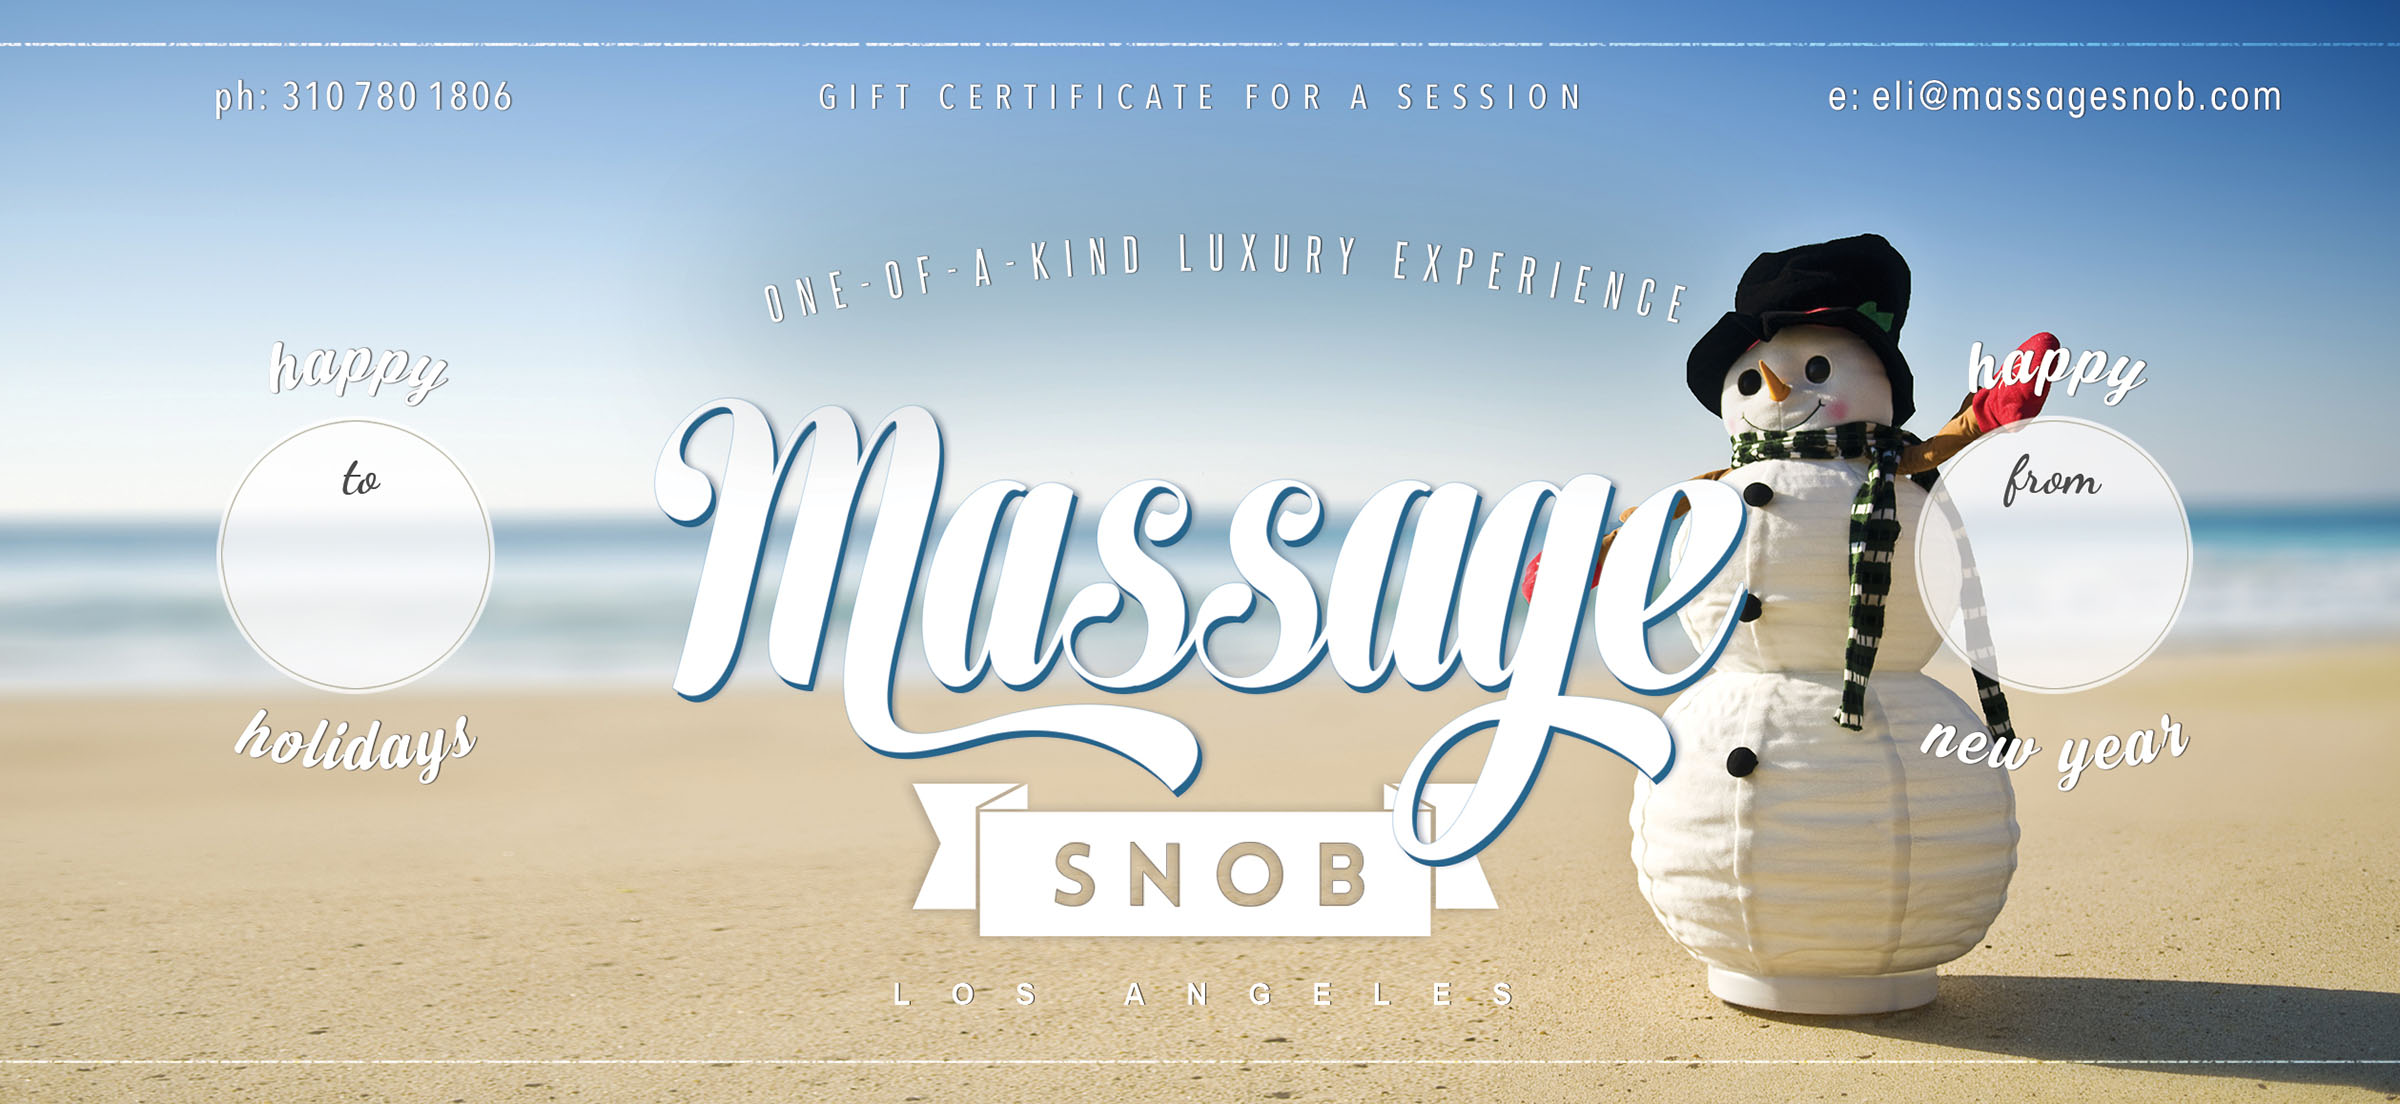 massage snob click image for printable gift certificate